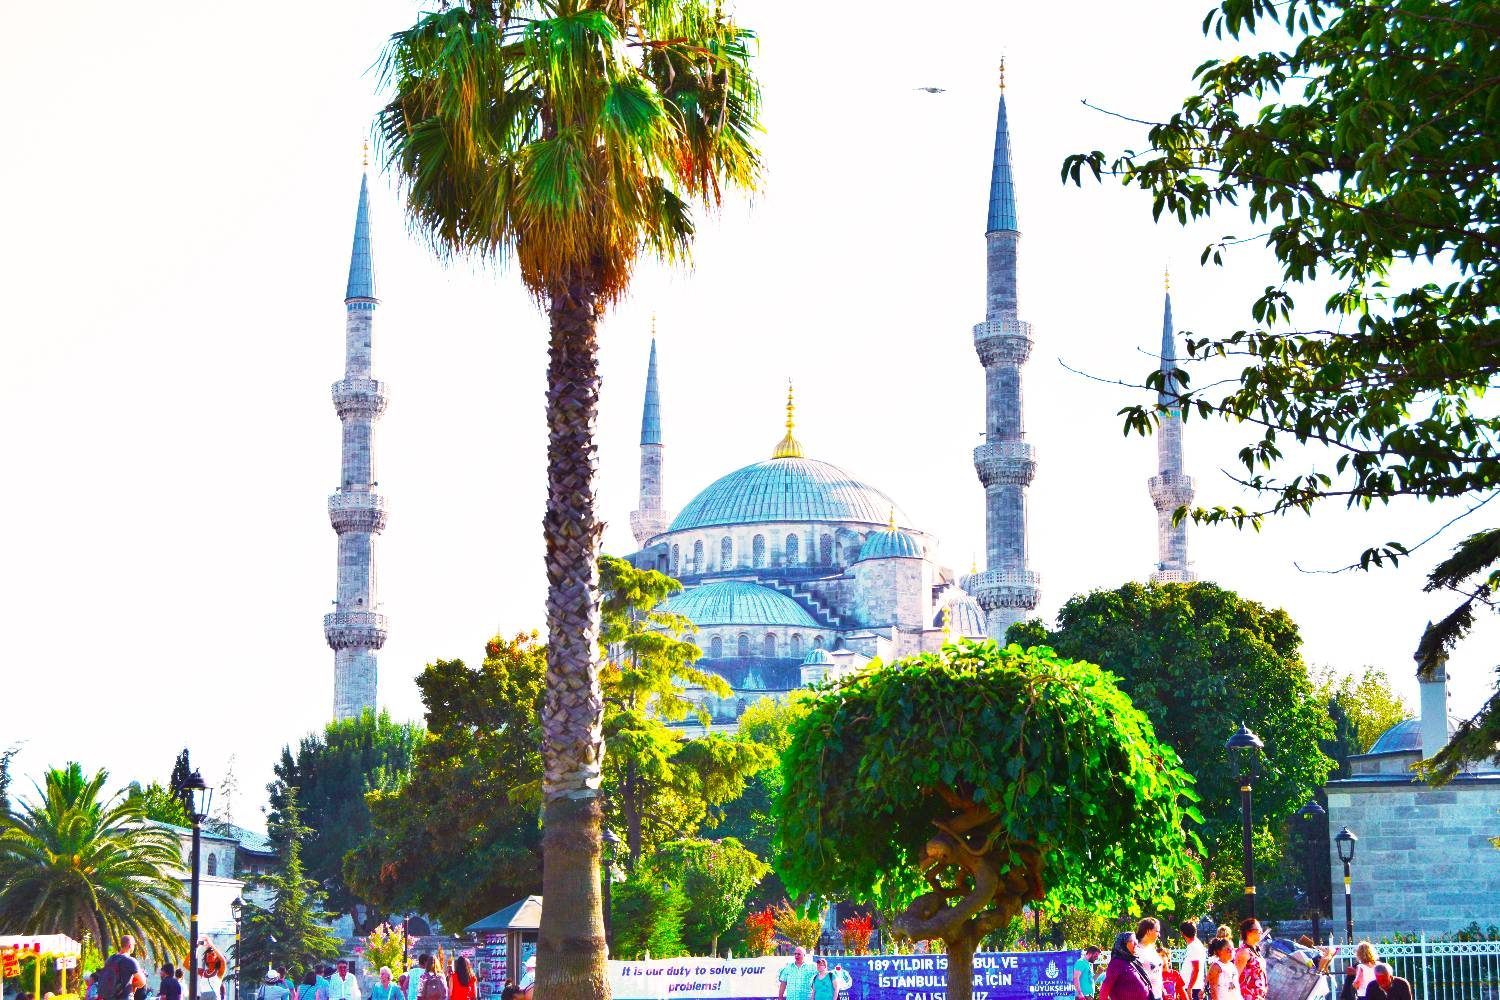 the-ultimate-one-week-istanbul-itinerary-and-guide-sultanahmet-square-istanbul-turkey-0471361001500722845